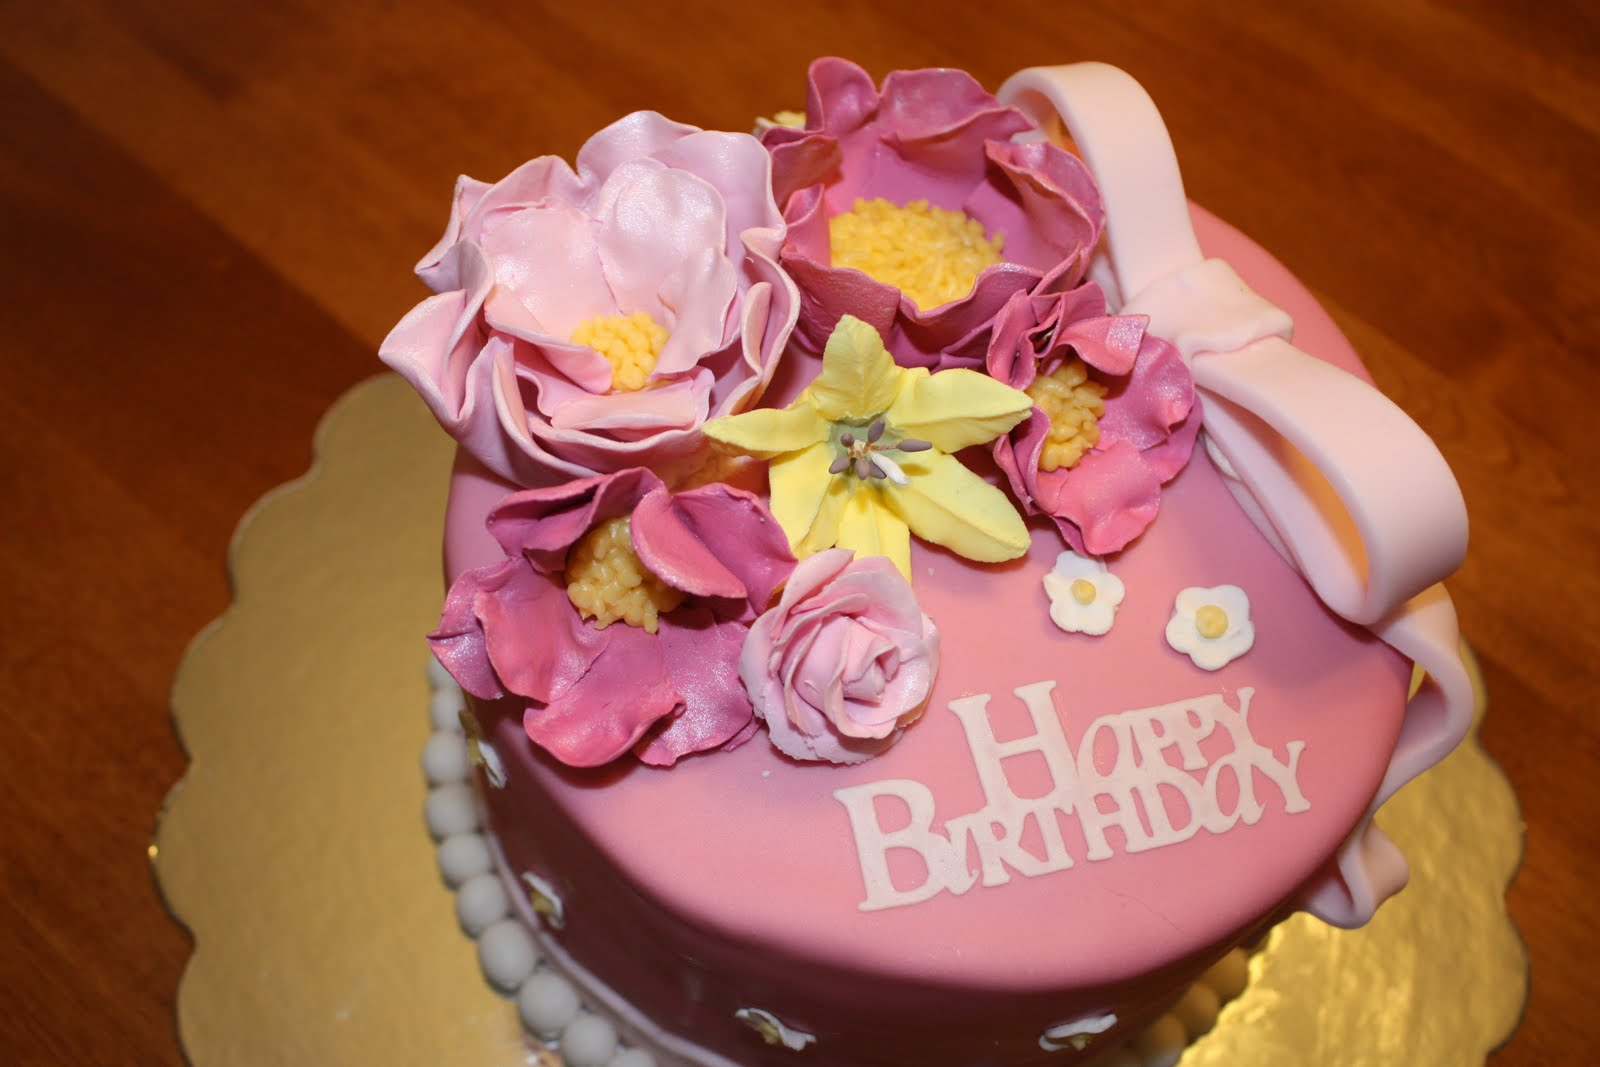 Flower Birthday Cake With Candles Quotes